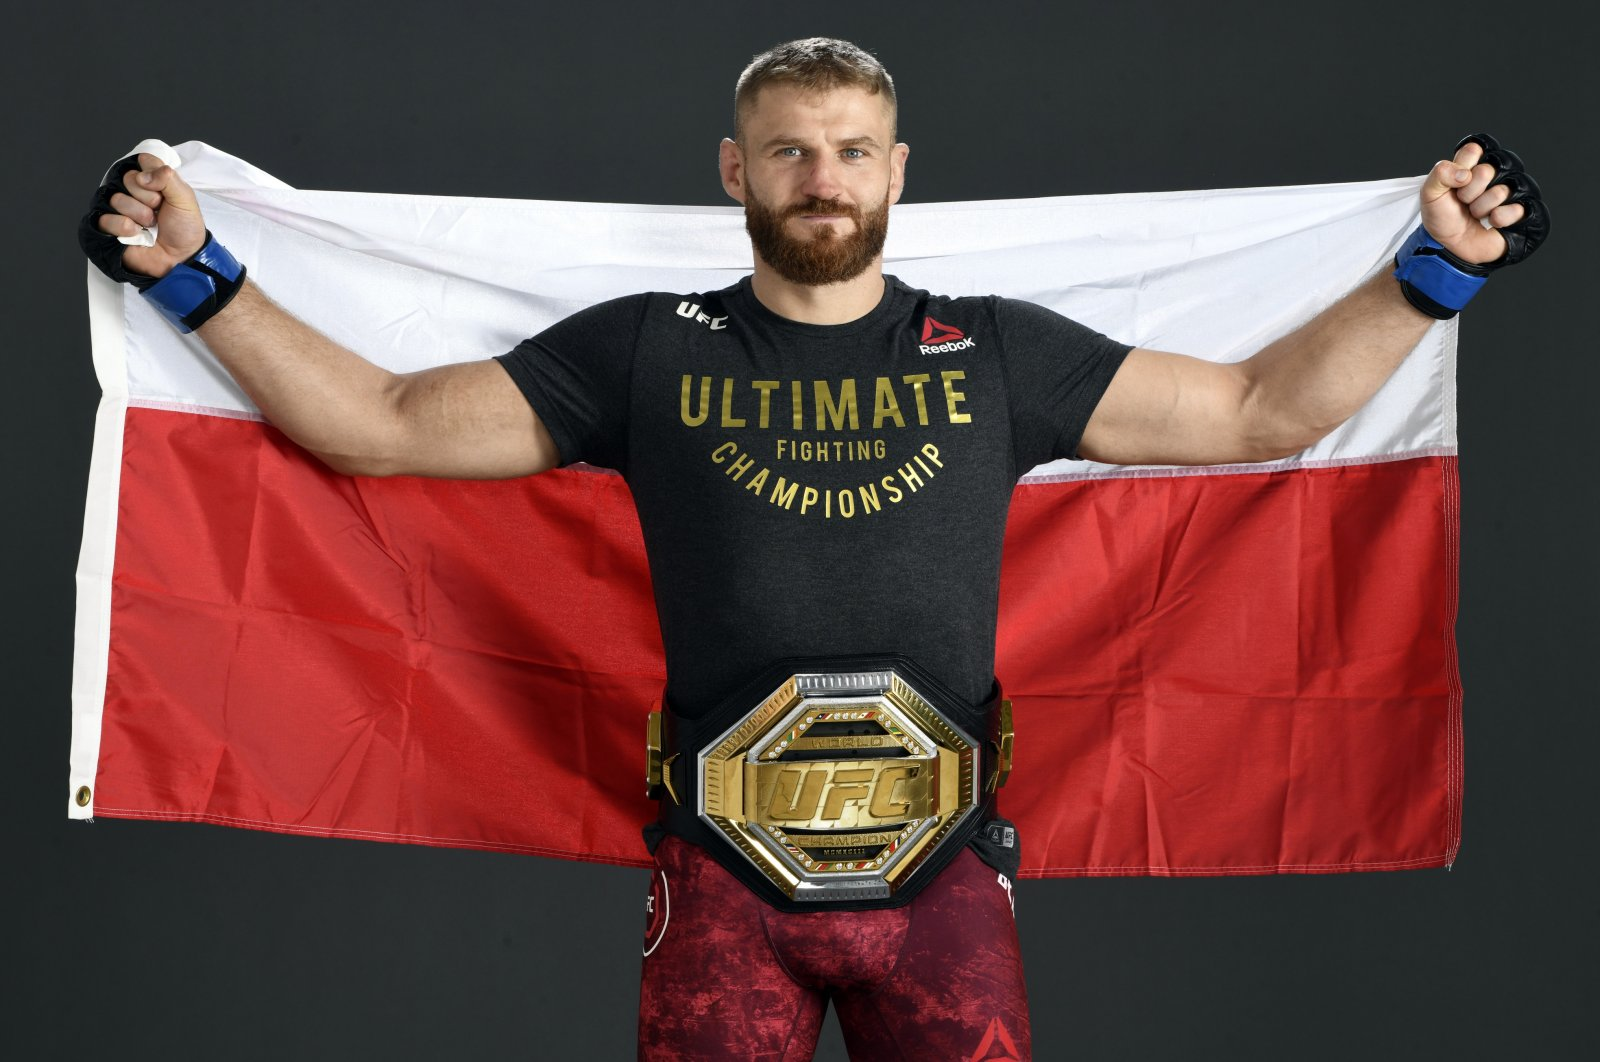 Poland's Jan Blachowicz poses for a post-fight portrait ahead of UFC 253 on UFC Fight Island, in Abu Dhabi, United Arab Emirates, Sept. 27, 2020. (Getty Images Photo)